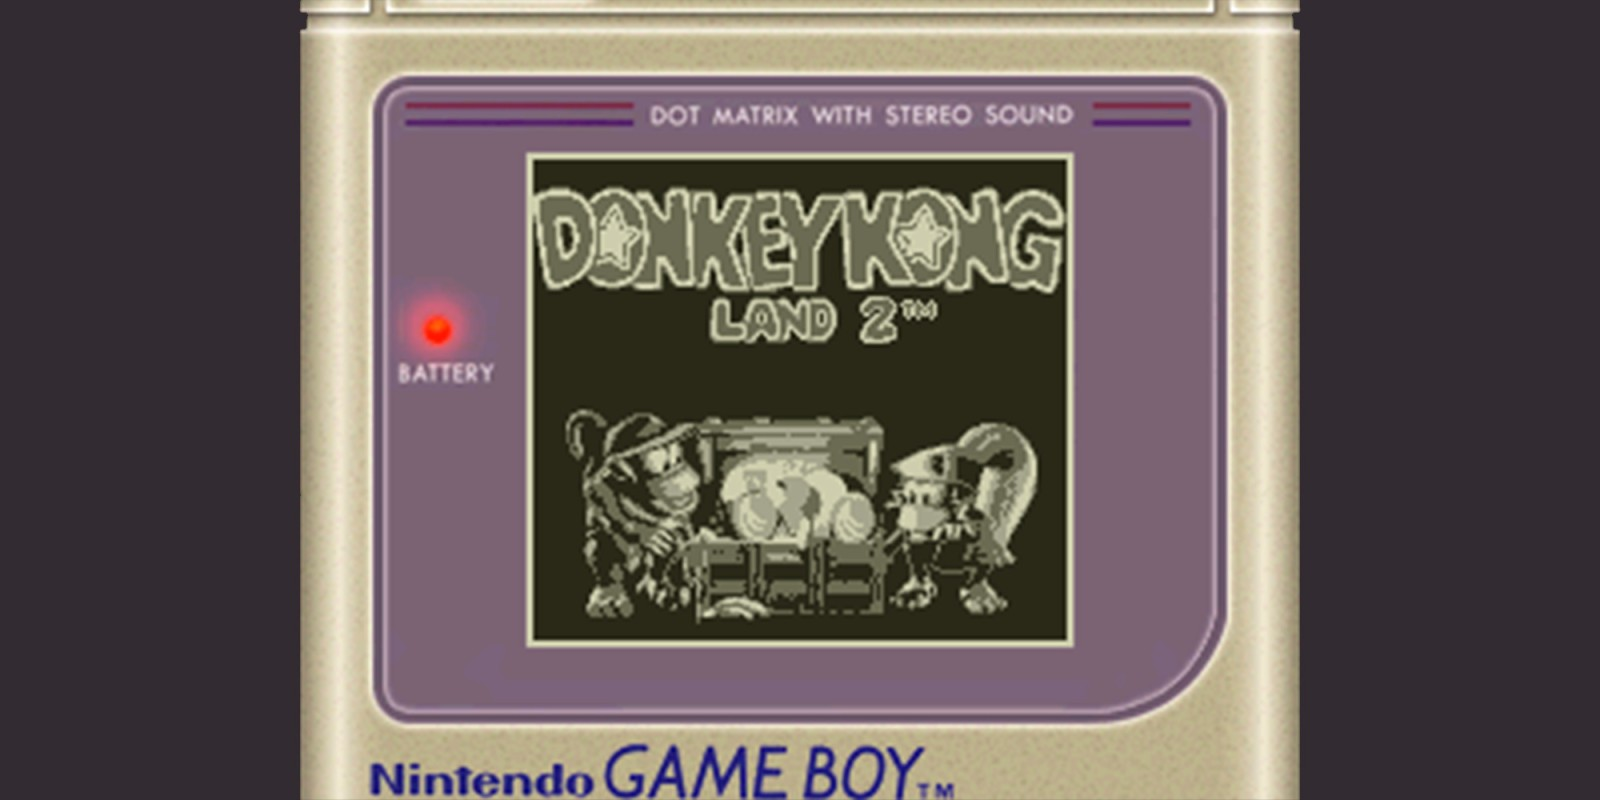 Donkey Kong Land 2 | Game Boy | Games | Nintendo